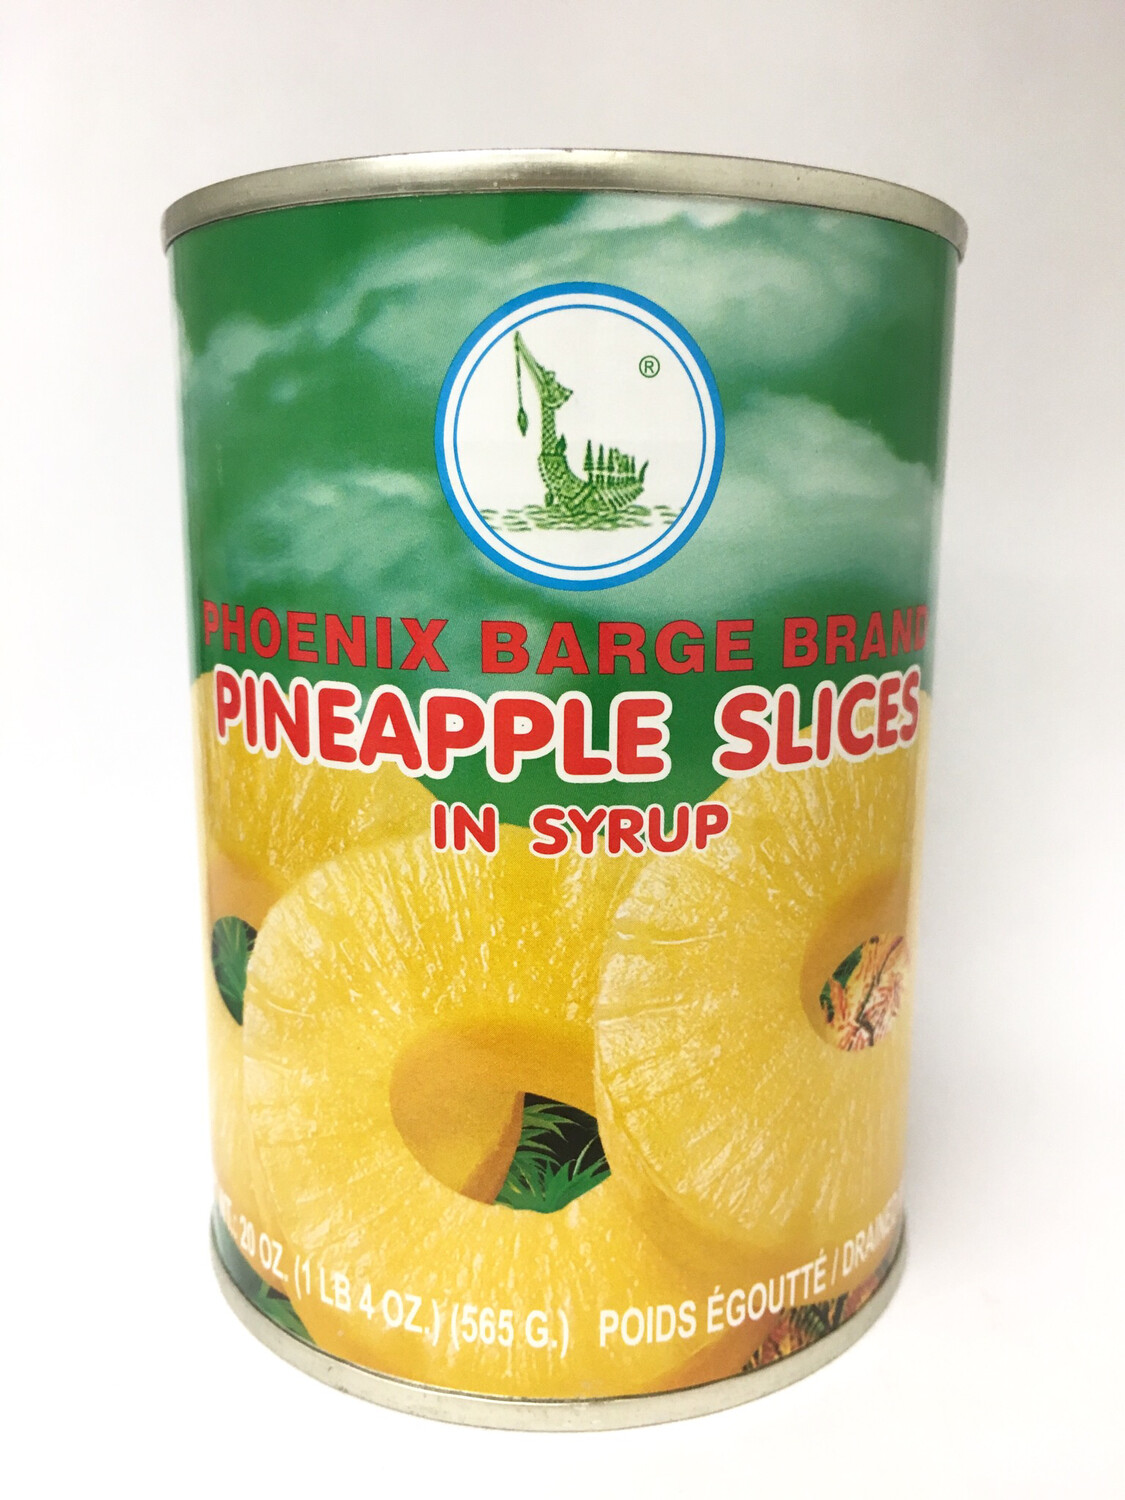 PHOENIX PINEAPPLE SLICE 24X565G